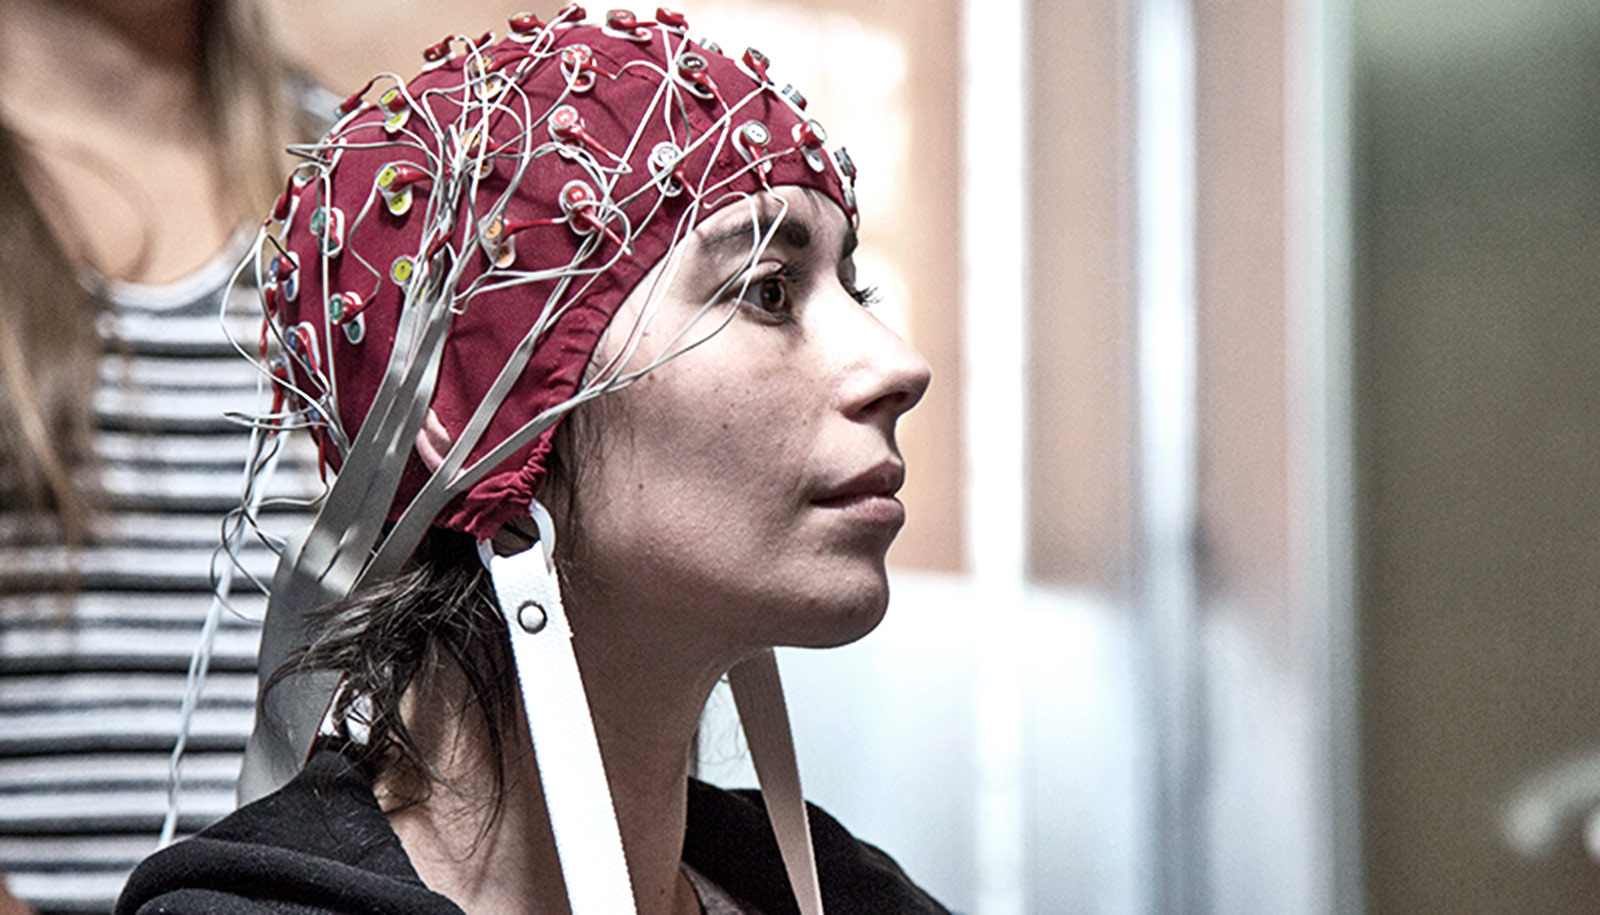 Hat for tuning brain zaps could improve Parkinson's treatment - Futurity